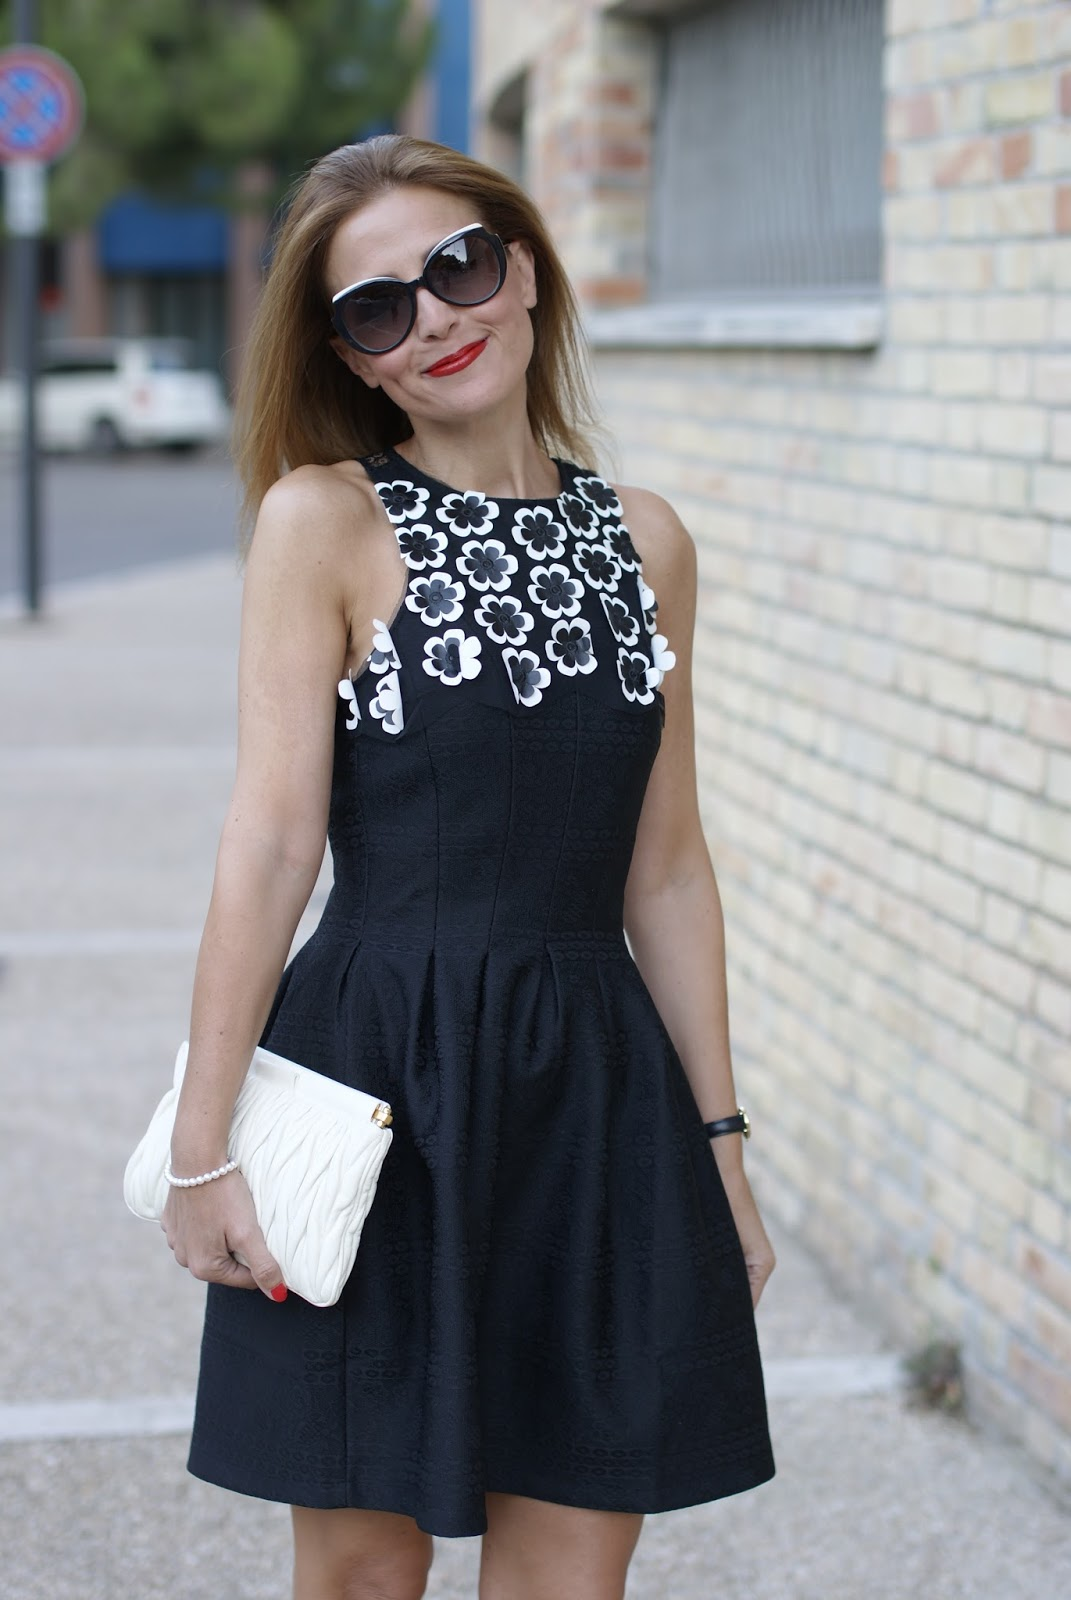 #DesigualSales black dress with 3d flowers and marc jacobs sunglasses on Fashion and Cookies fashion blog, fashion blogger style